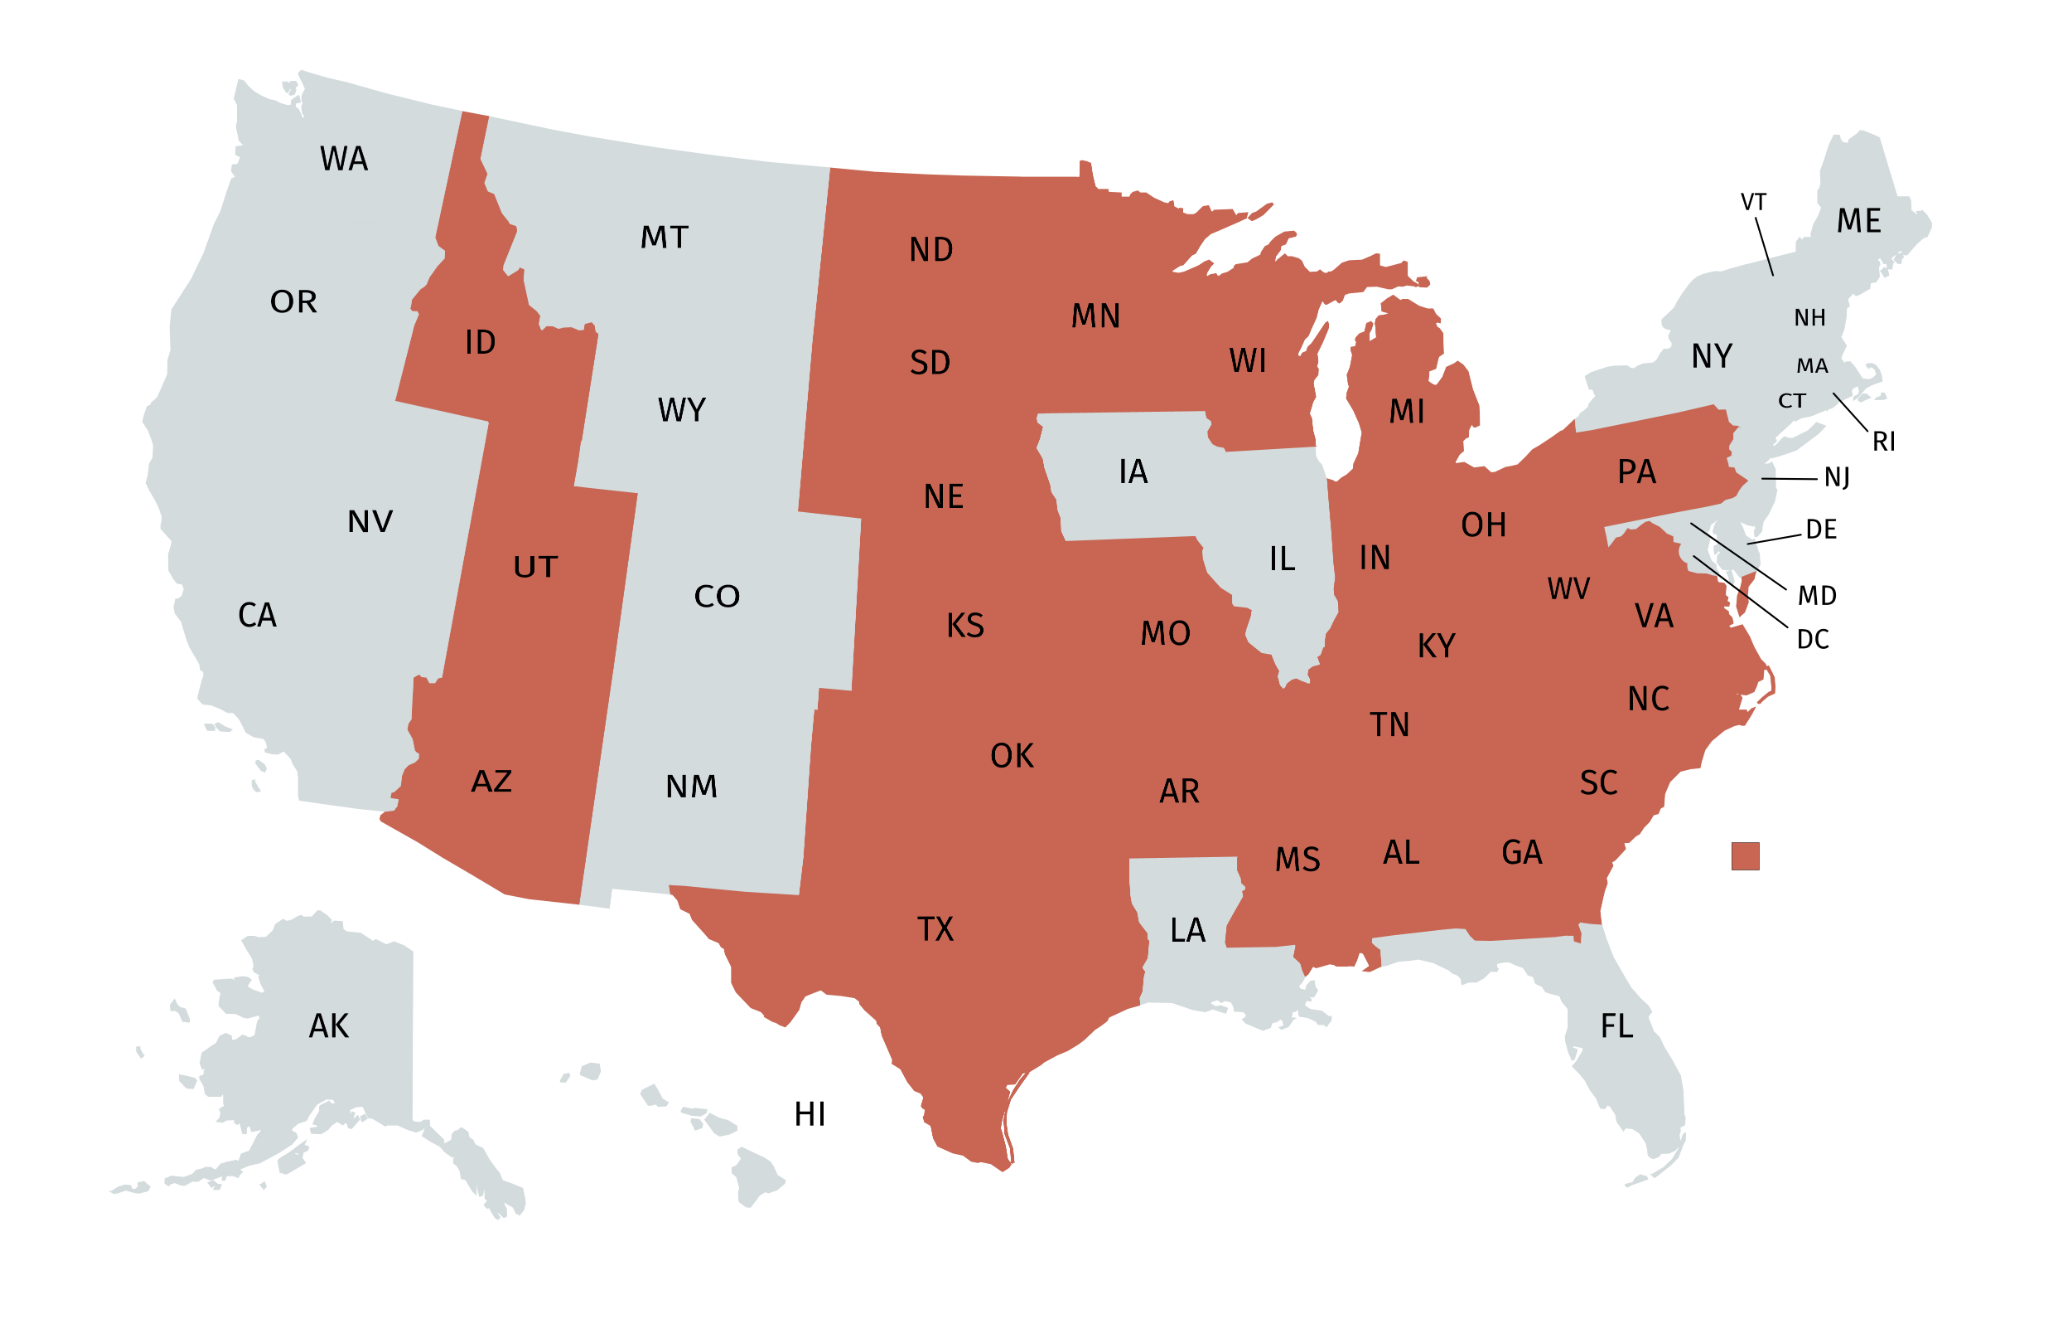 As of 2019, 27 US states have imposed mandated abortion waiting periods. Data provided by the  Guttamacher Institute